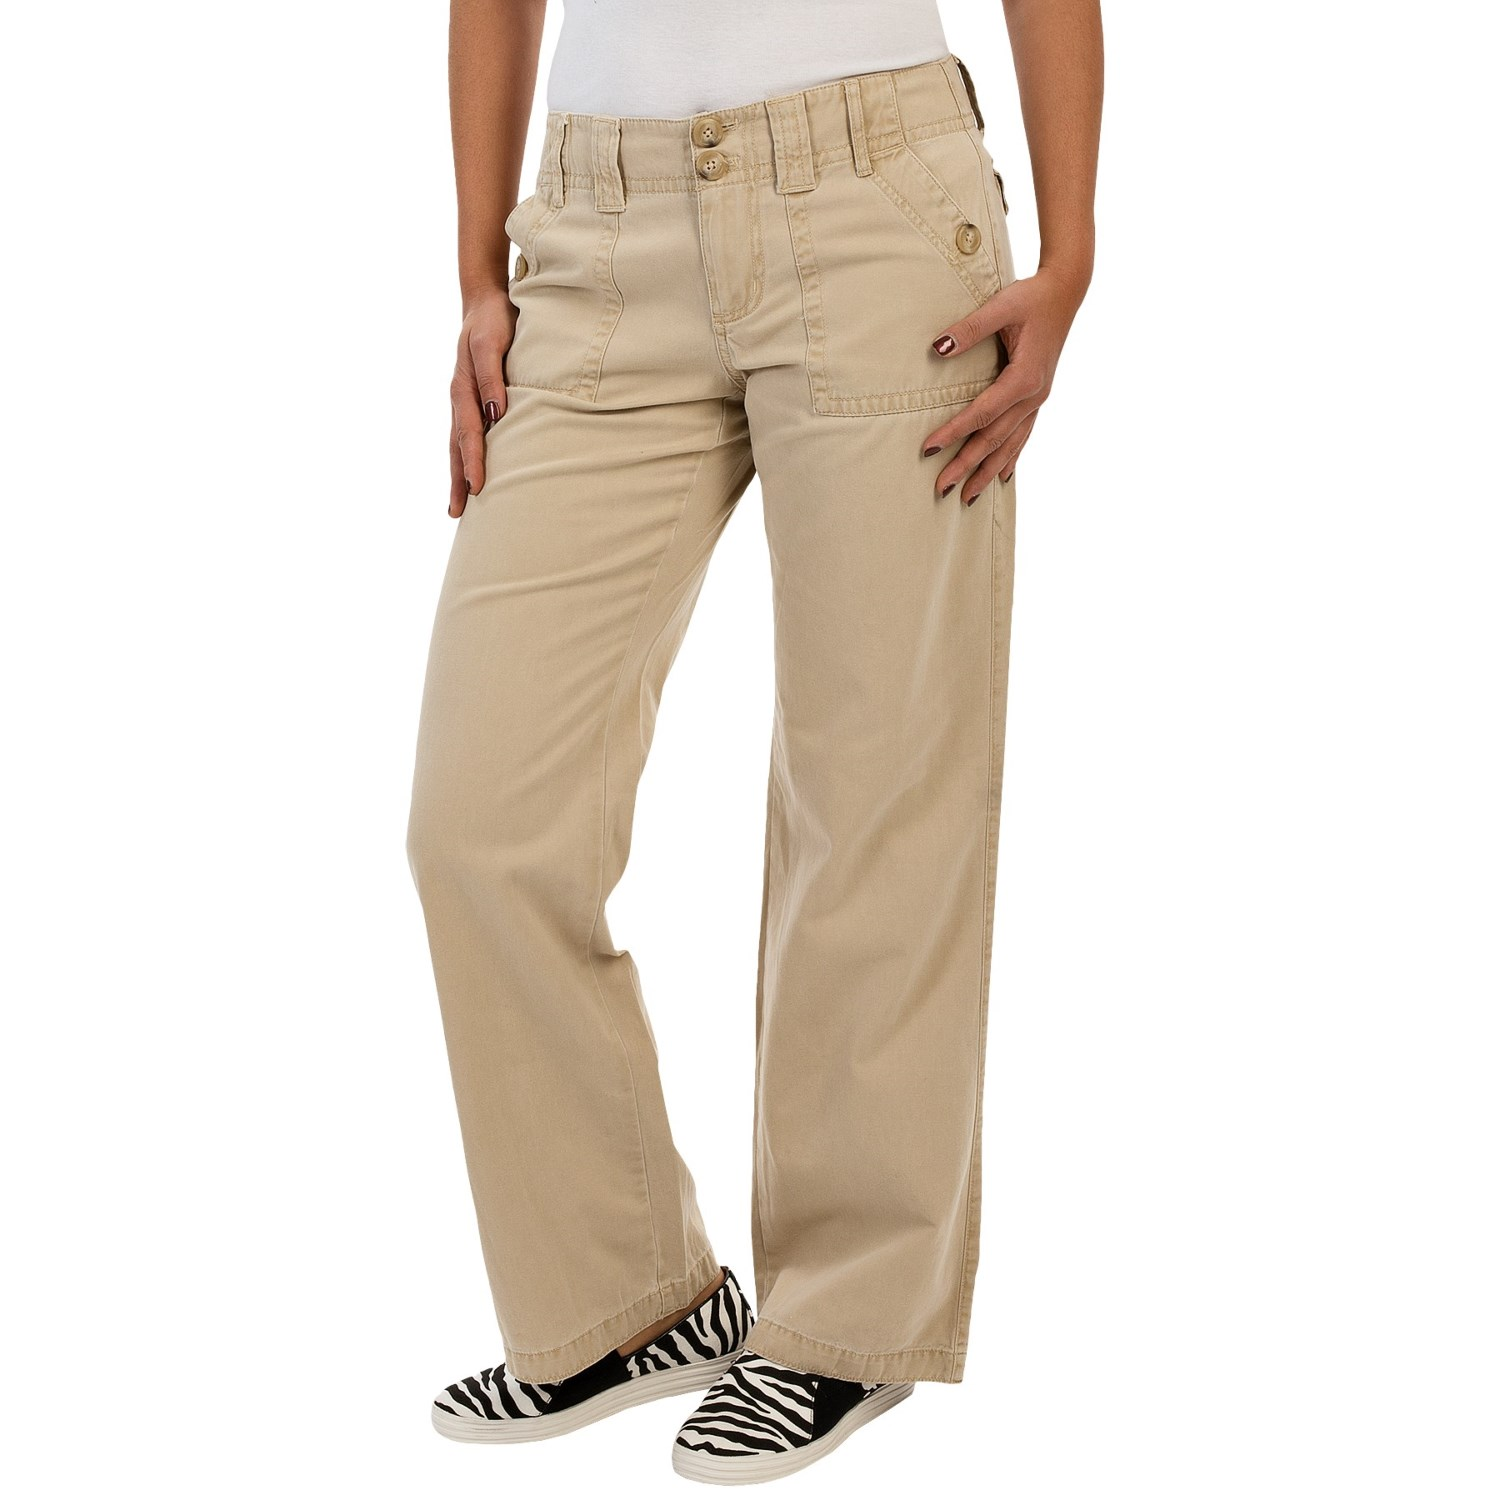 Perfect 2nds Embrace Warmweather Adventures In These Stretch Cotton Cargo Pants Lightweight And Breathable, They Boast Stretchyribbed Side Panels At The Waist For Added Comfort, And Roll Hems With Button Tabs For Adjustable Length And